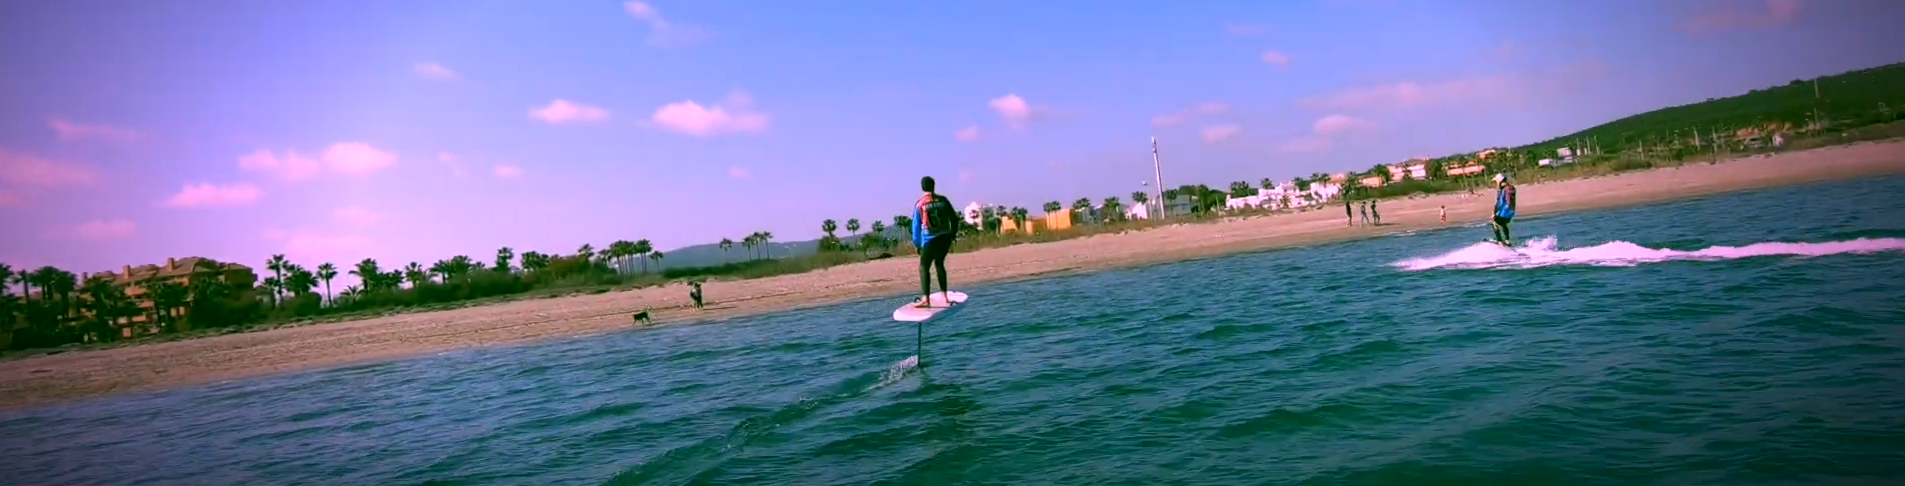 2 Guys on electric surfboard